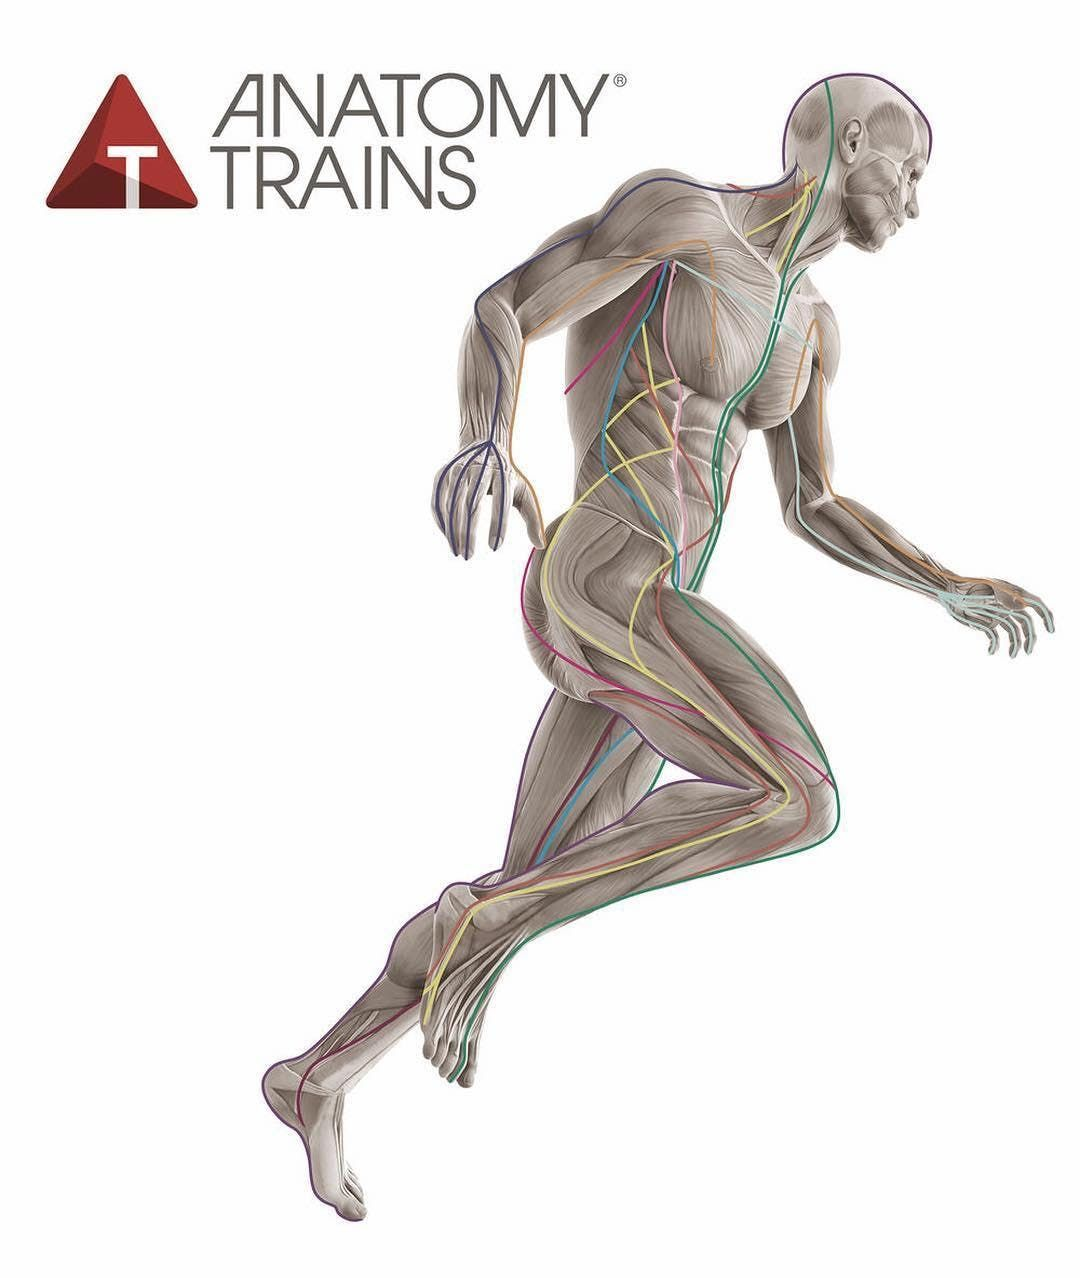 Anatomy Trains Structural Essentials Arches & Legs